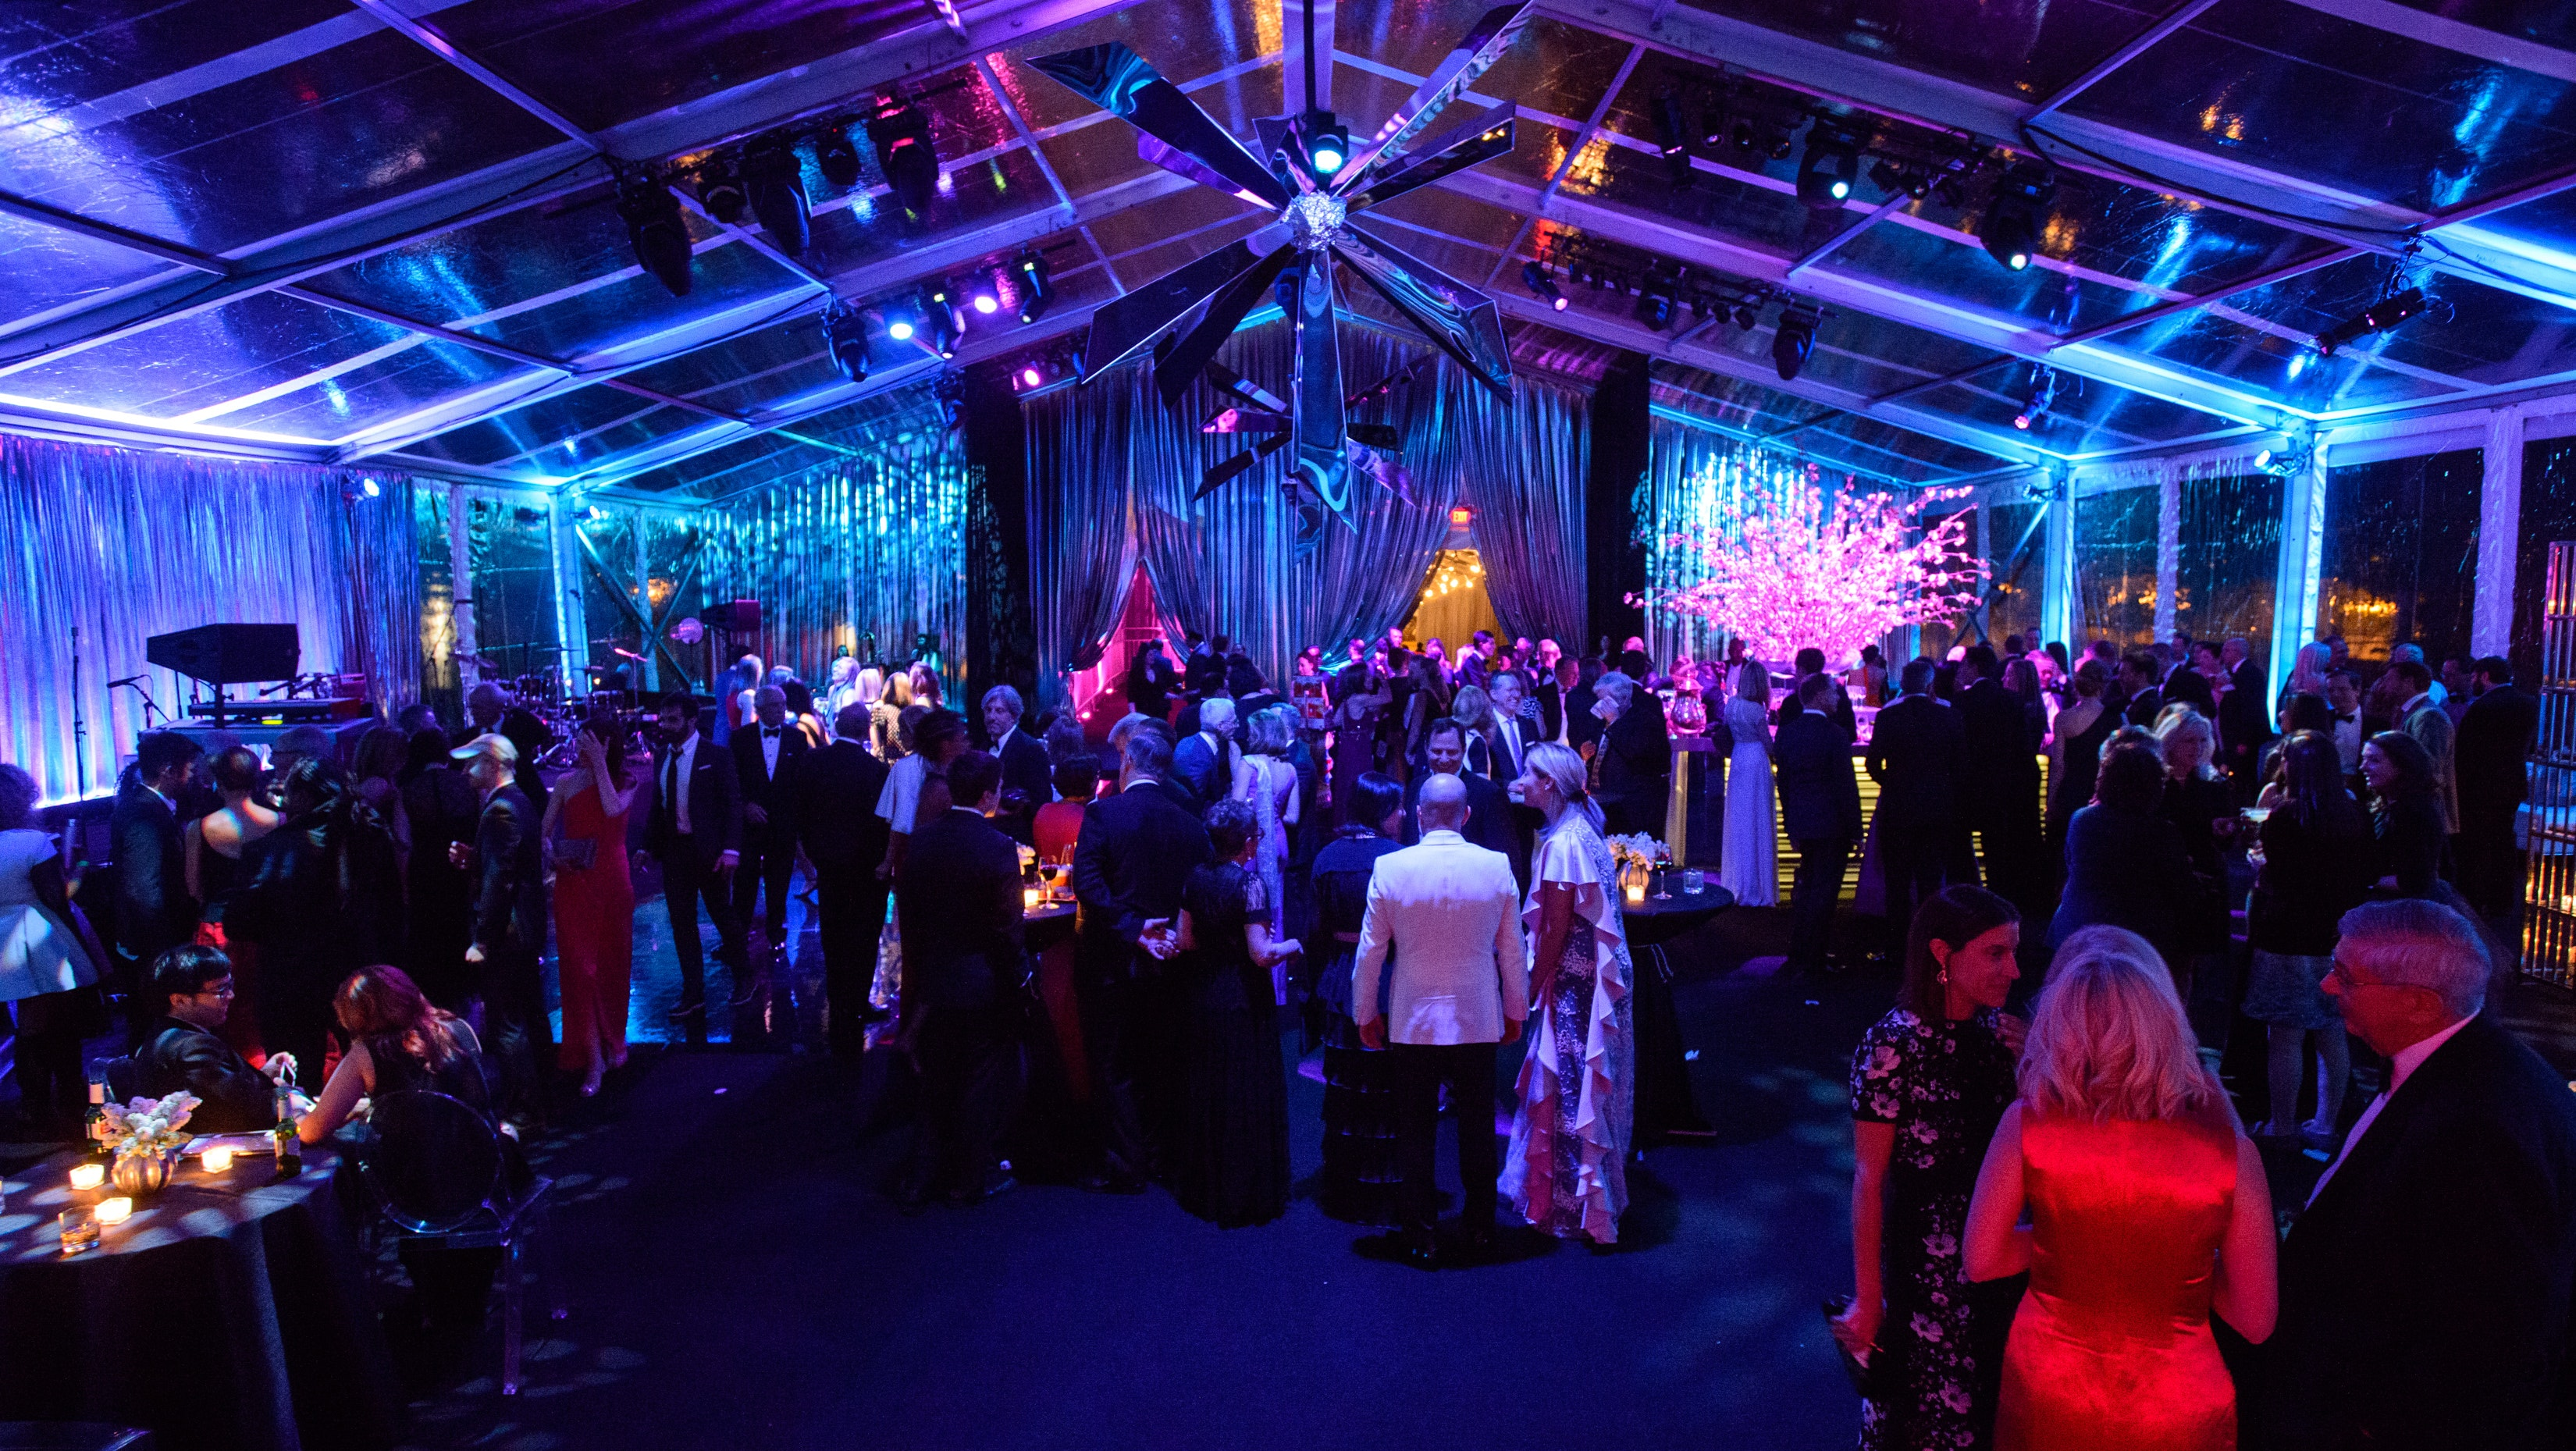 Guests dance in a large tented space filled with multi-colored light.